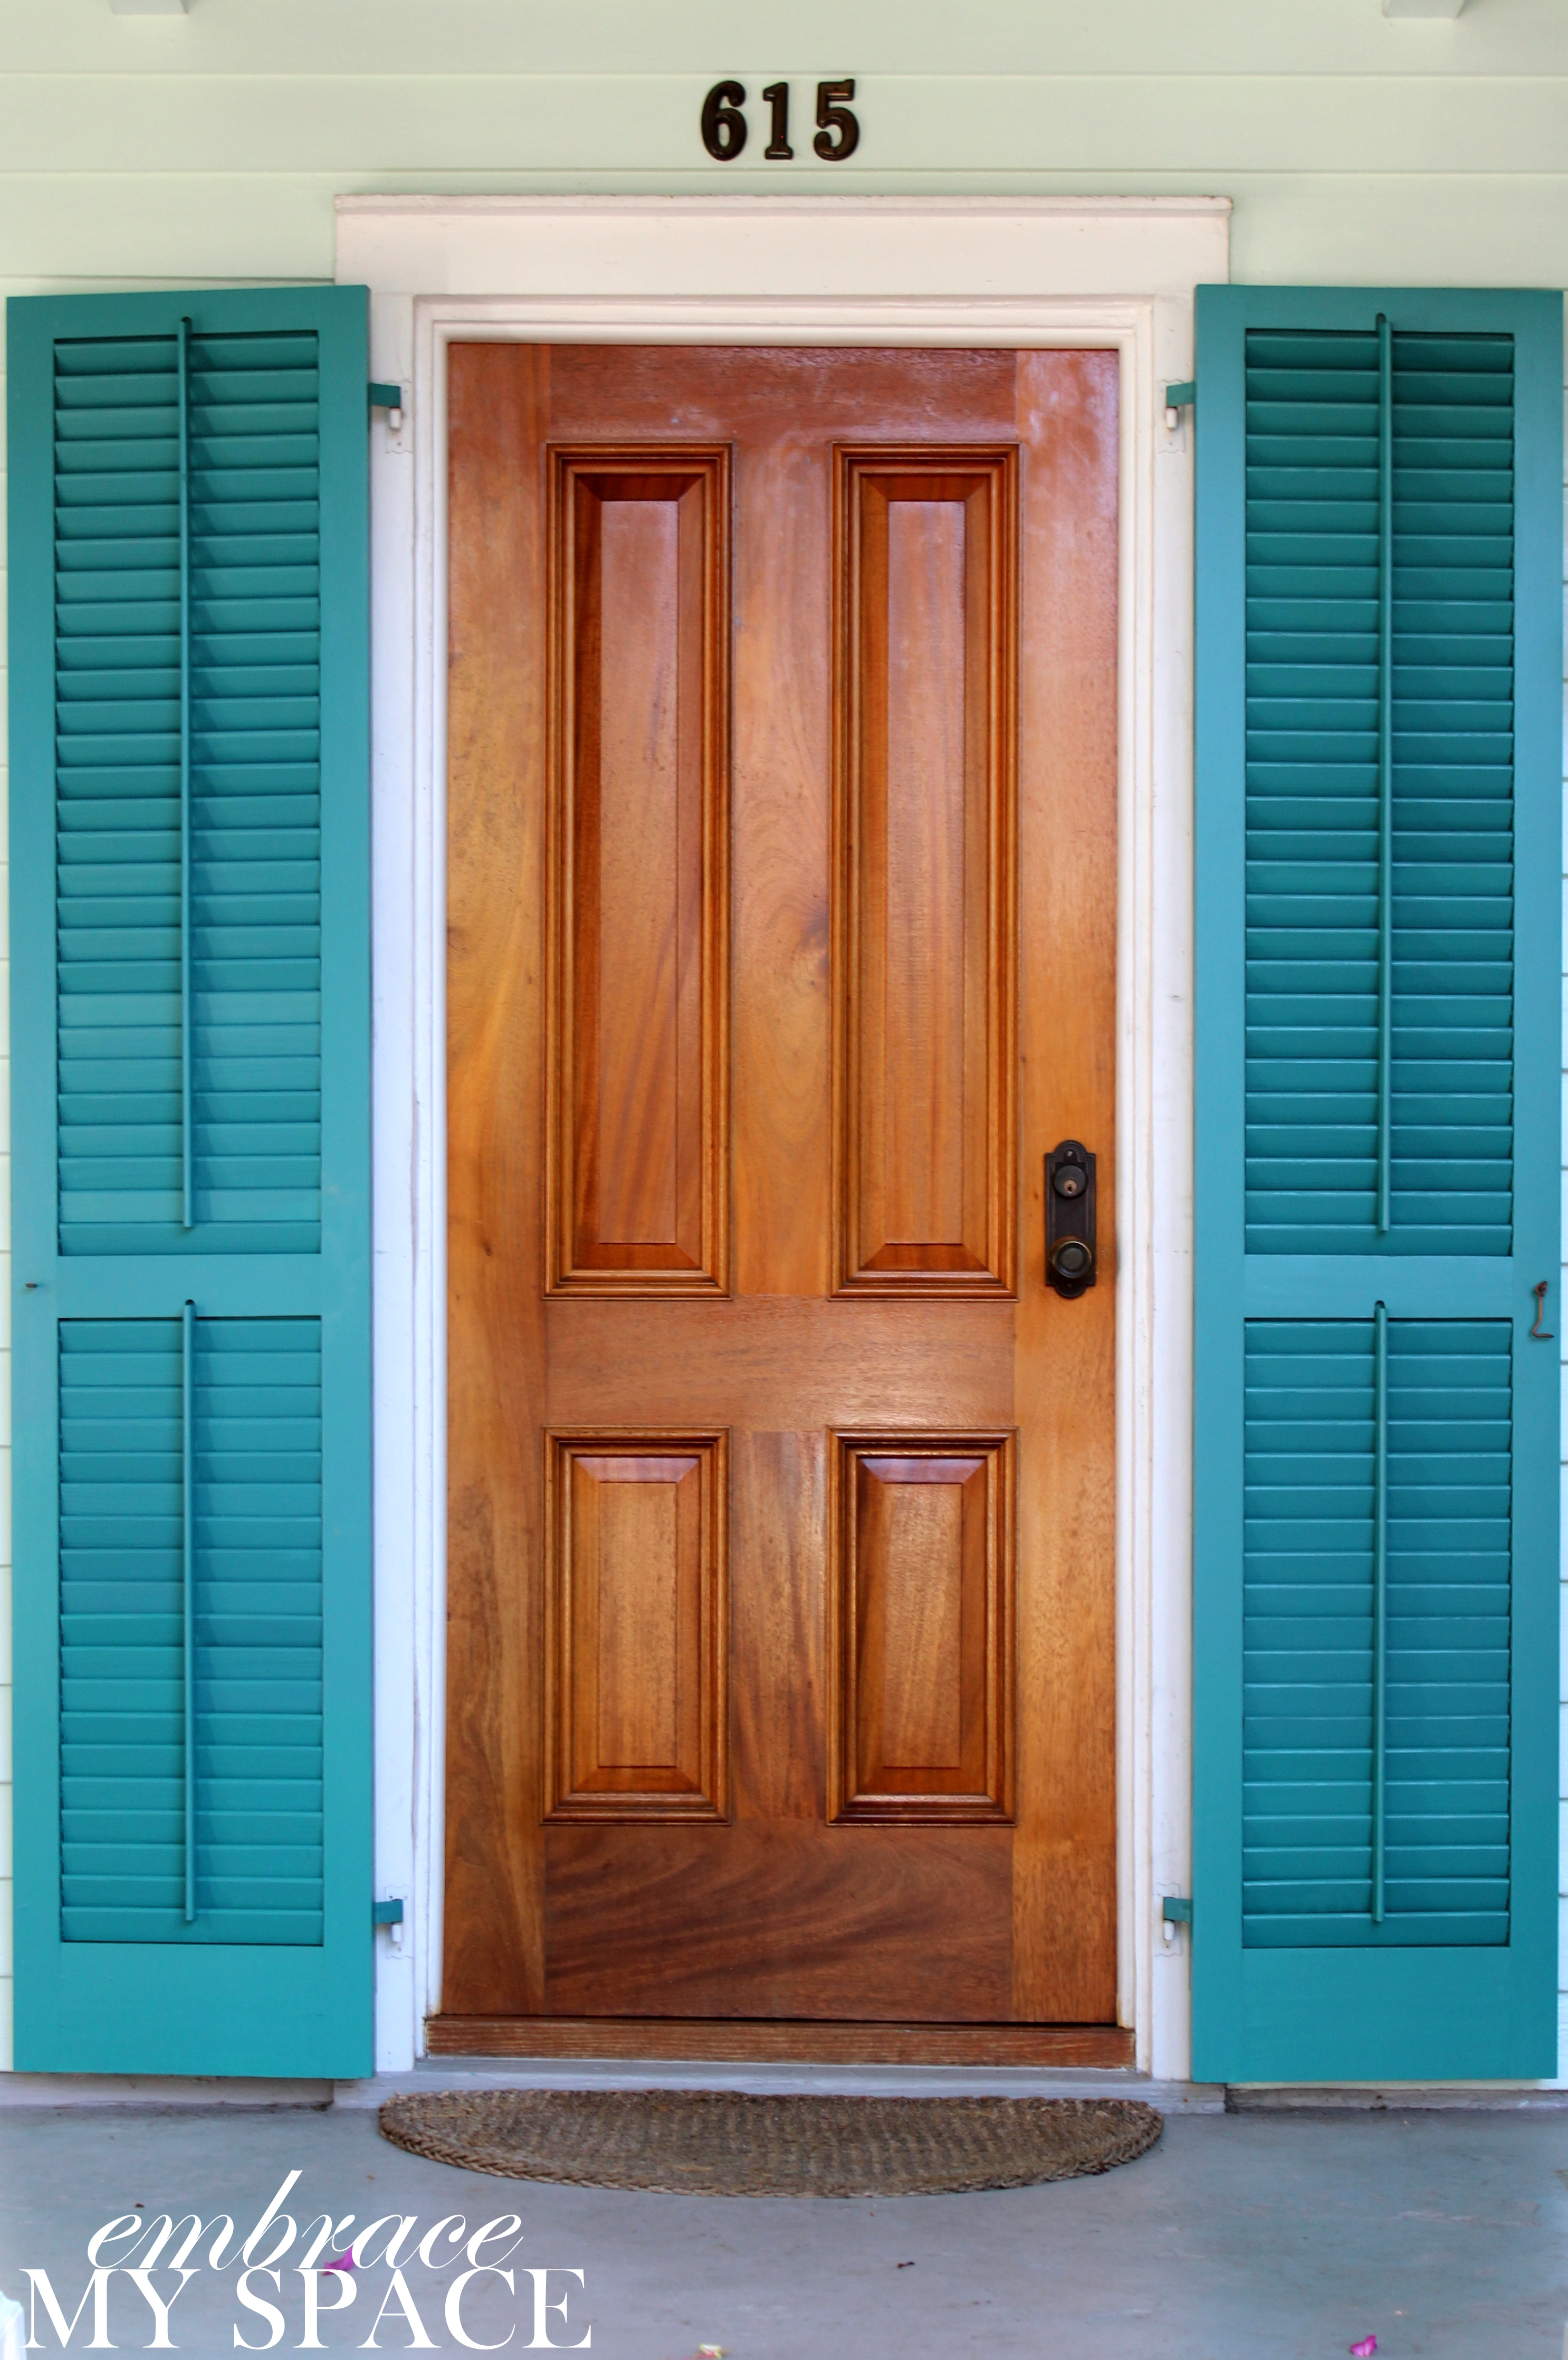 4472 #207A8B DOOR: Many Key West Homes Have Storm Shutters On The Windows And Doors  image Colored Entry Doors 47132972